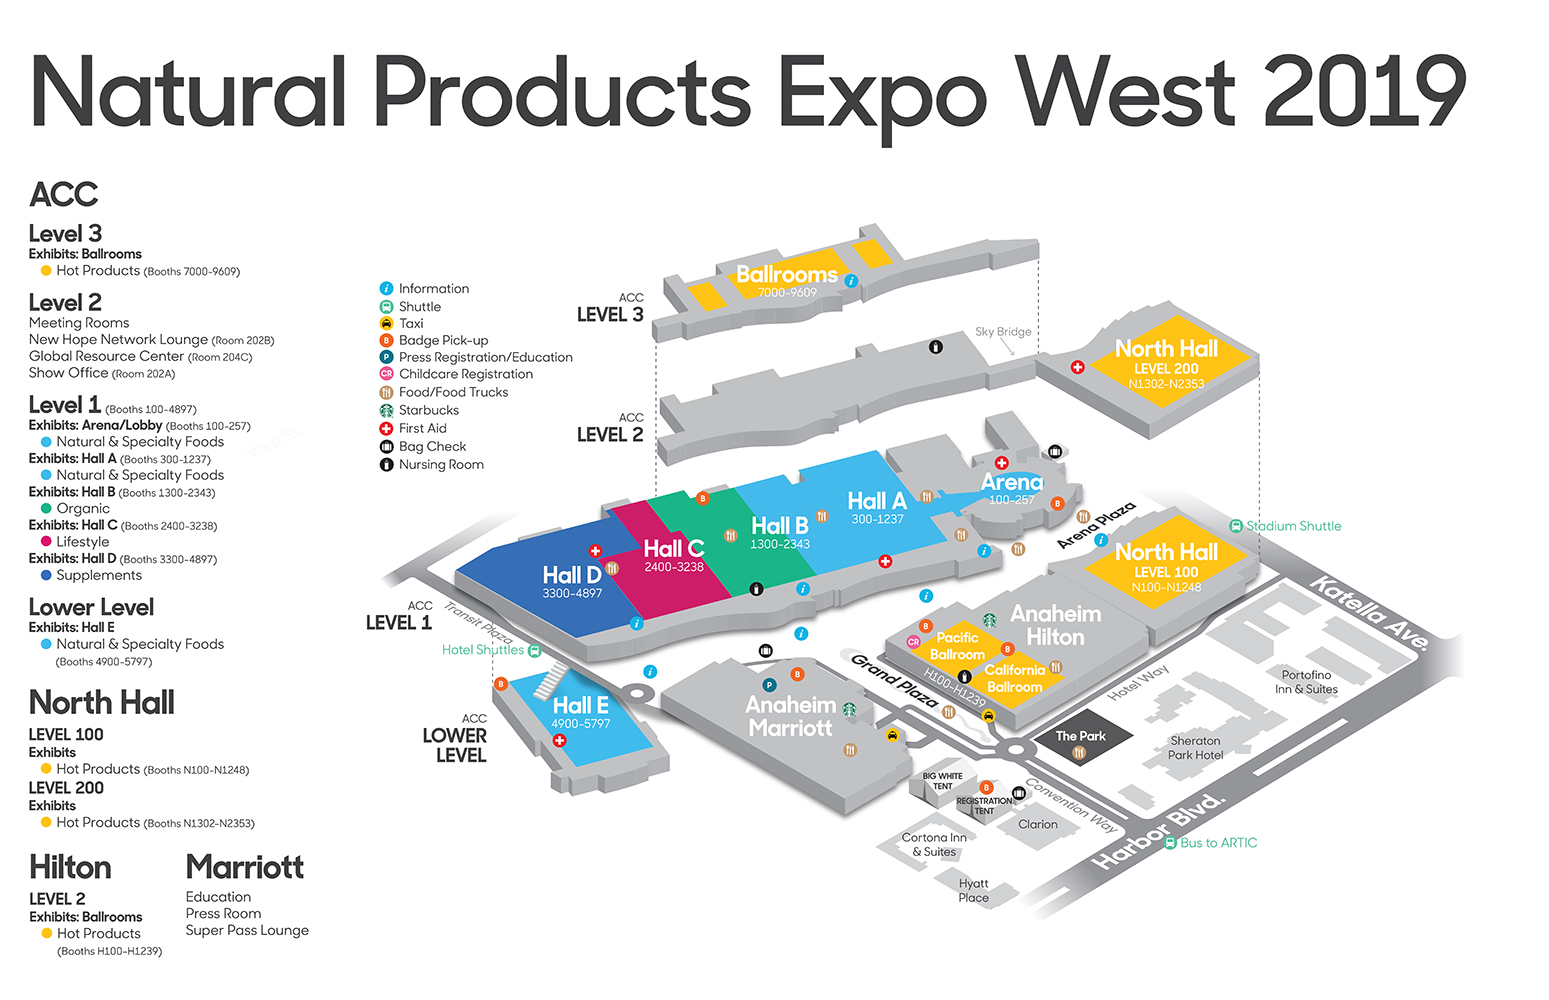 Expo West 2019 campus map